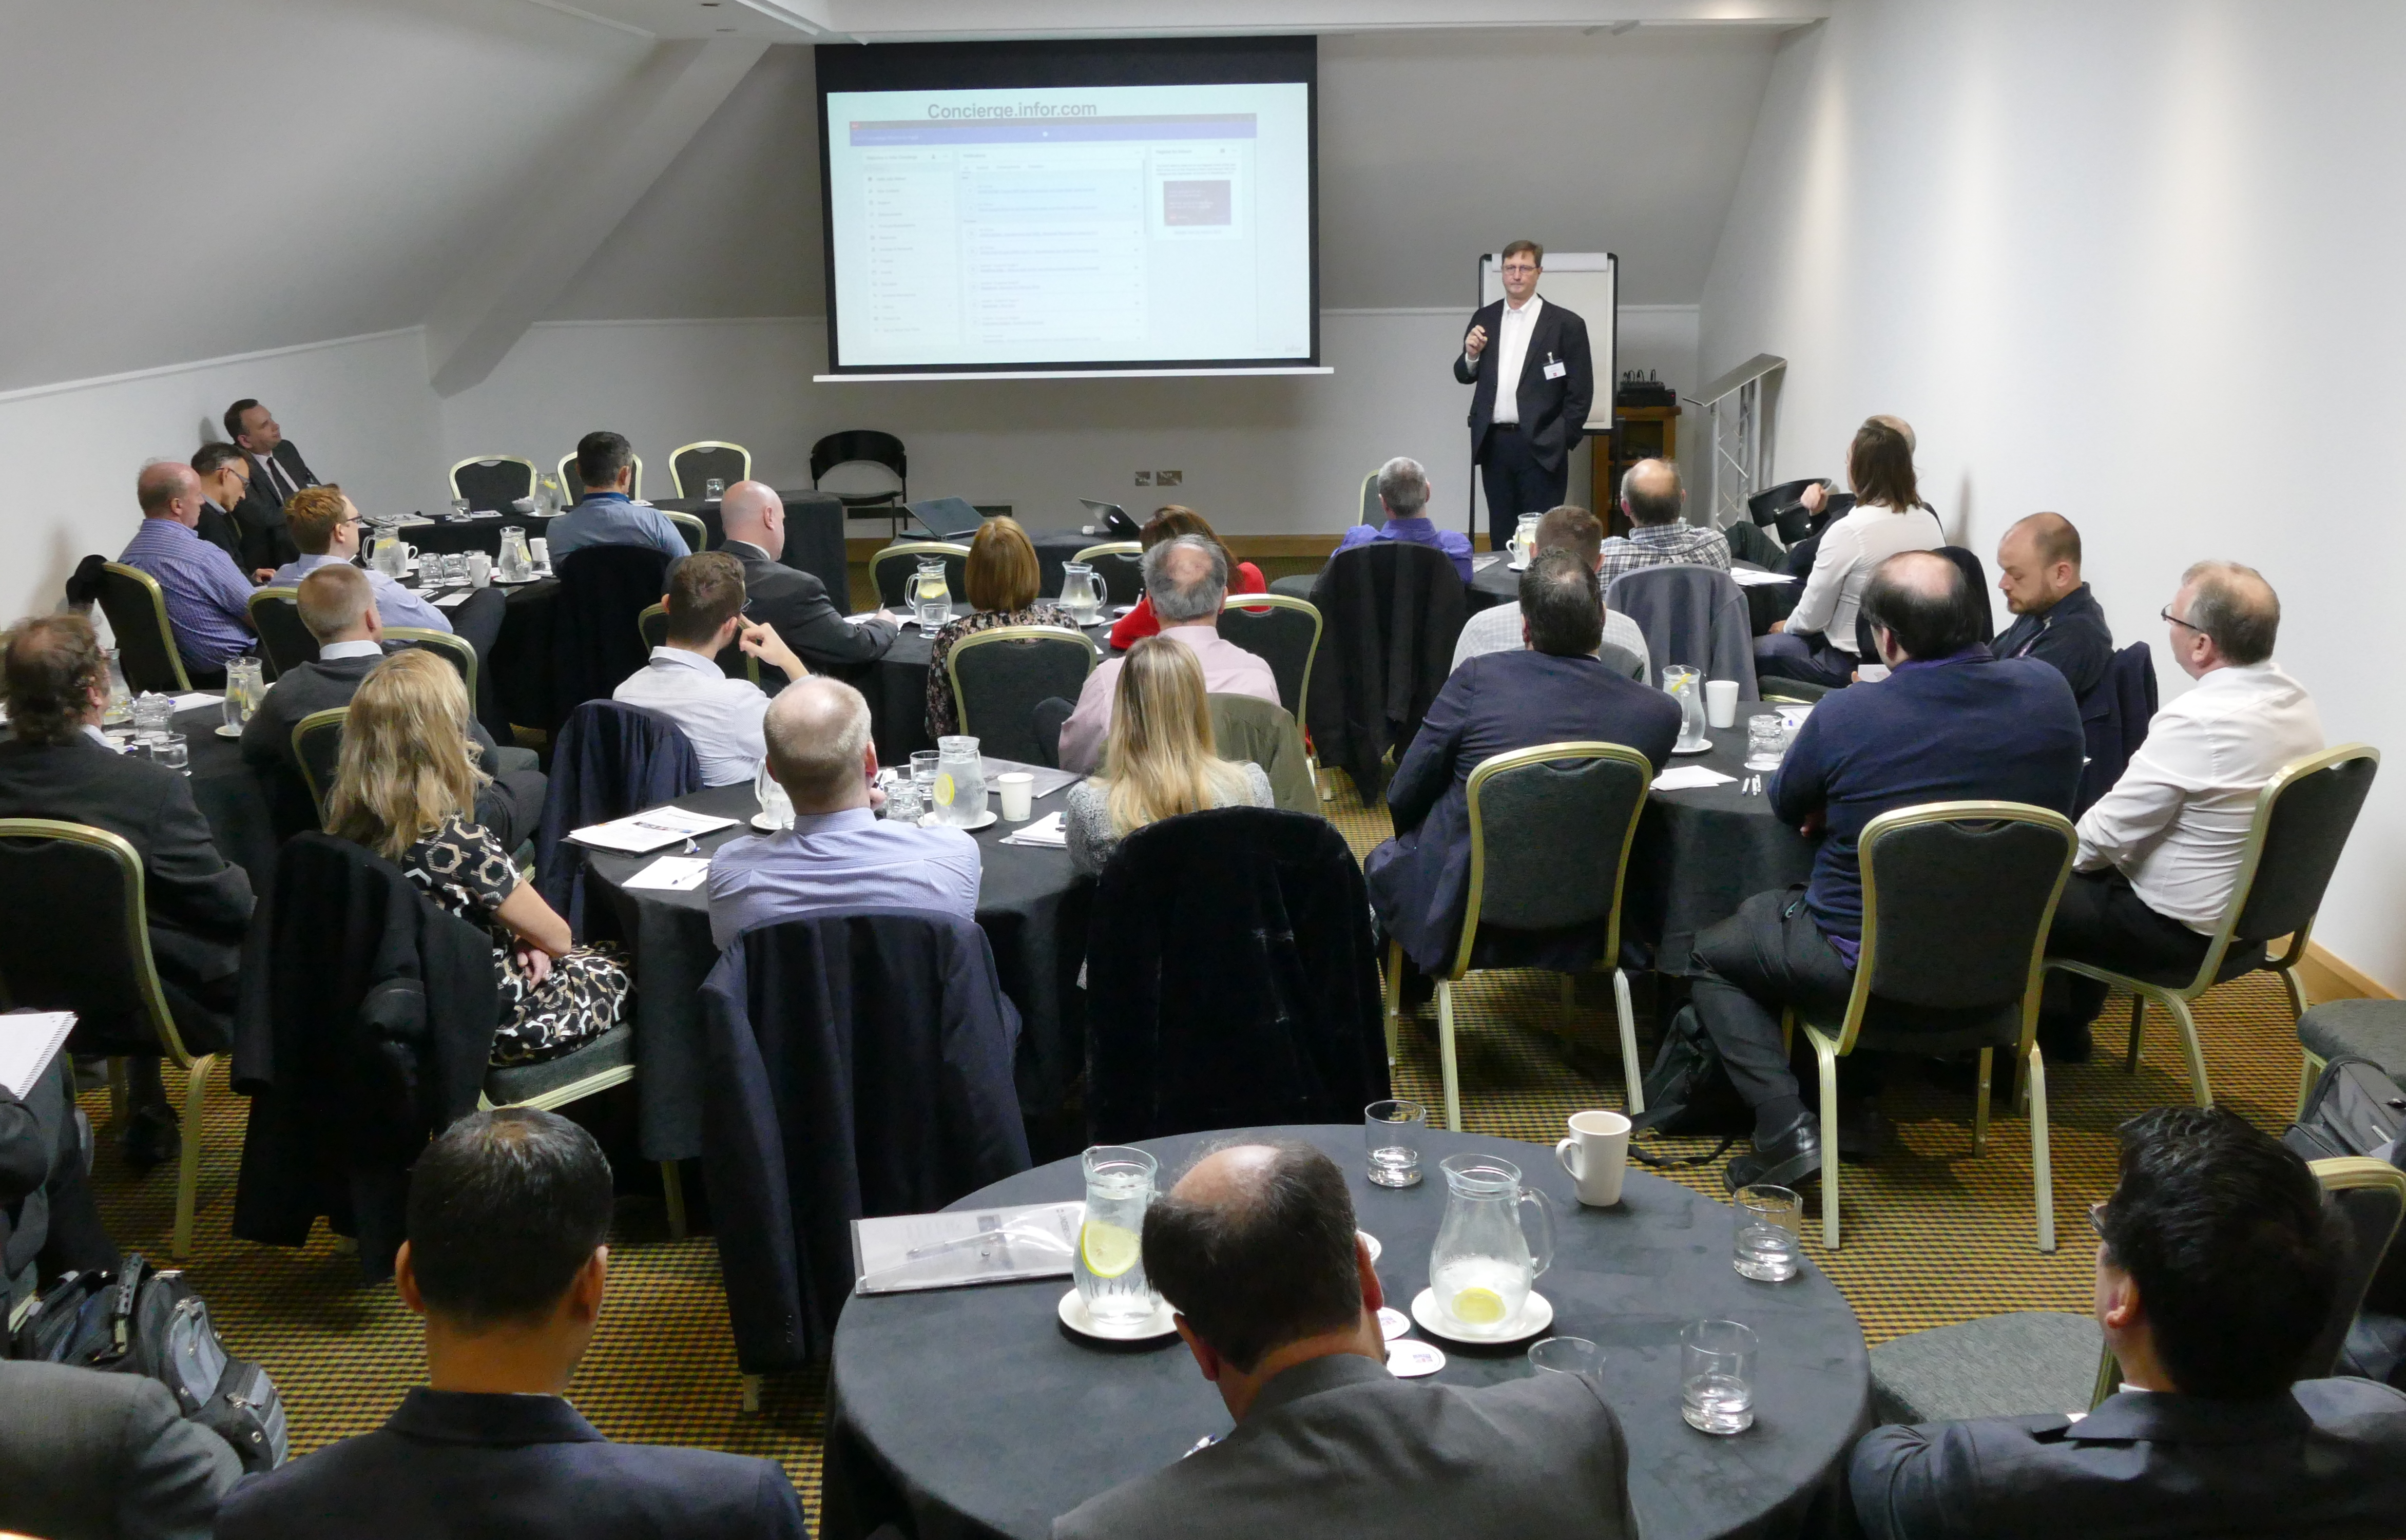 Annual Infor XA Customer Event Delivers Key Insight To Enhance User Experience